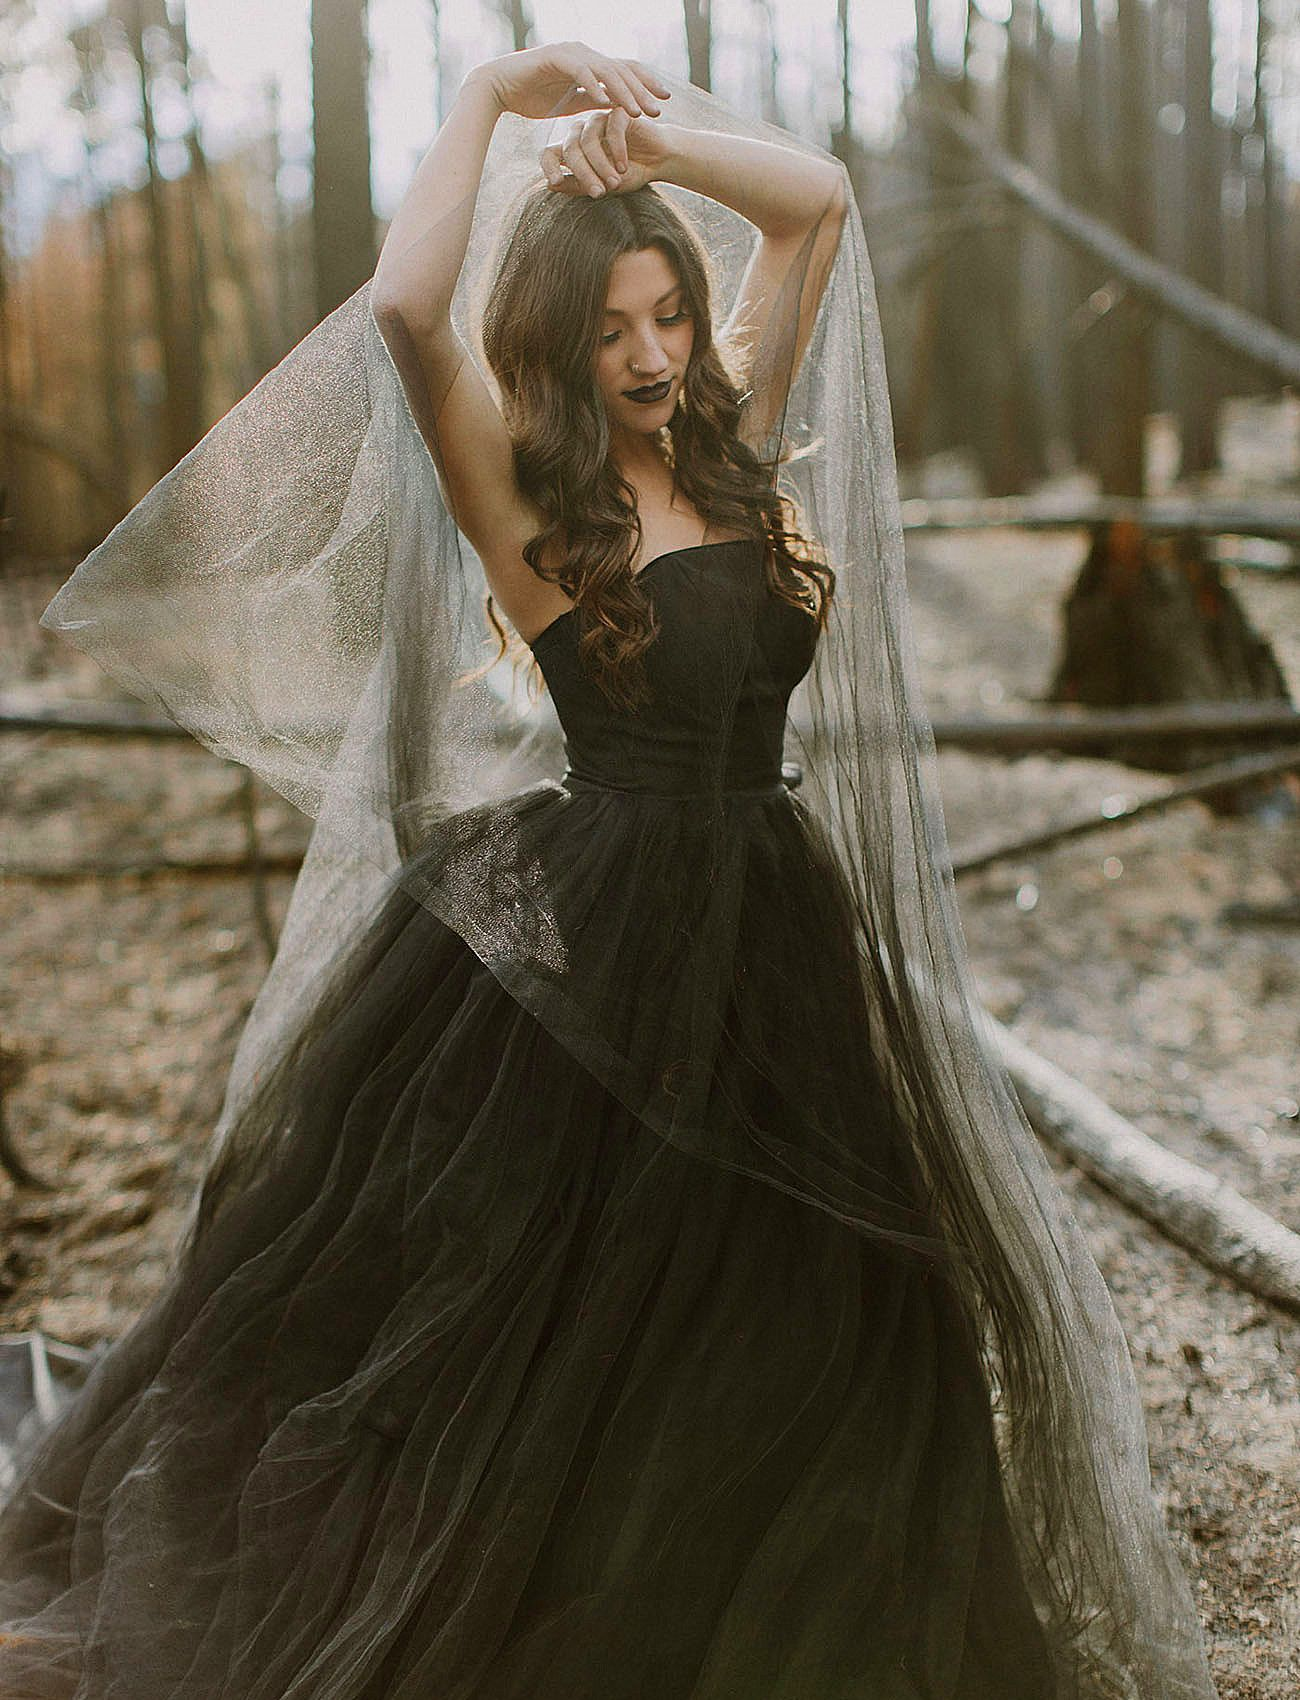 Tis The Season Halloween Weddings And The Black Wedding Dress Have Gone Up 217 In Gothic Wedding Dress Halloween Wedding Dresses Tulle Skirt Wedding Dress